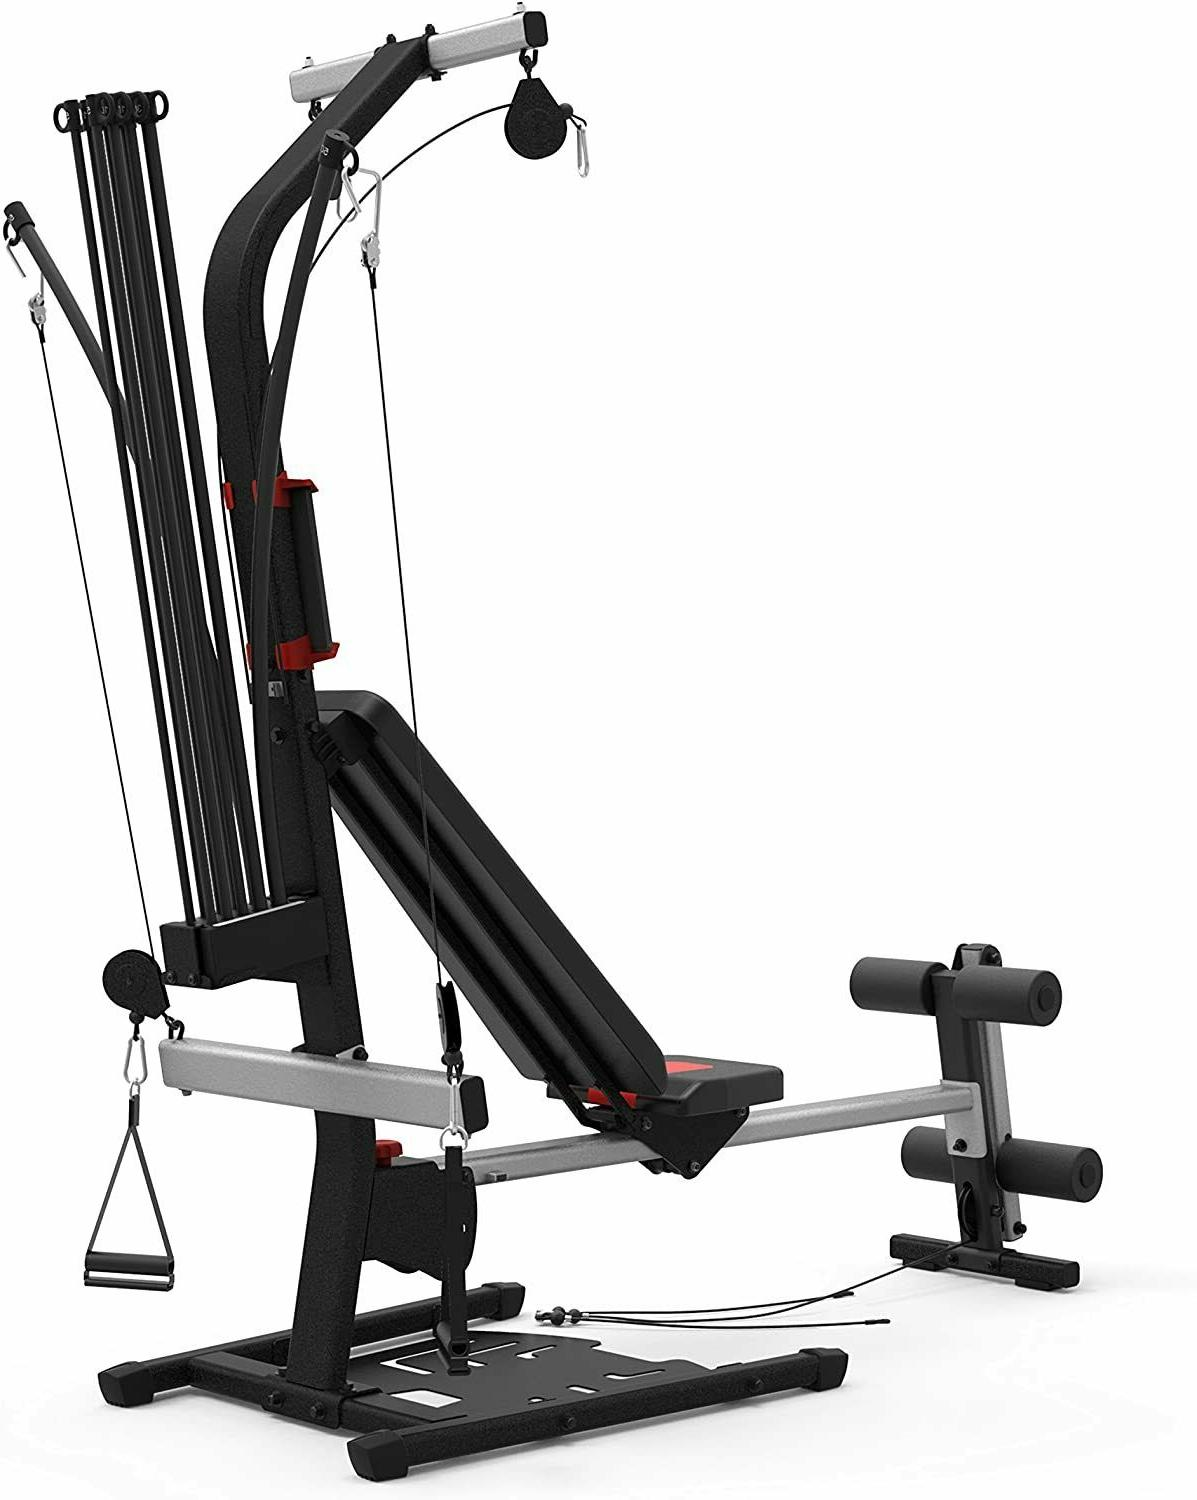 Bowflex PR1000 Home Gym -Full Body Training Machine